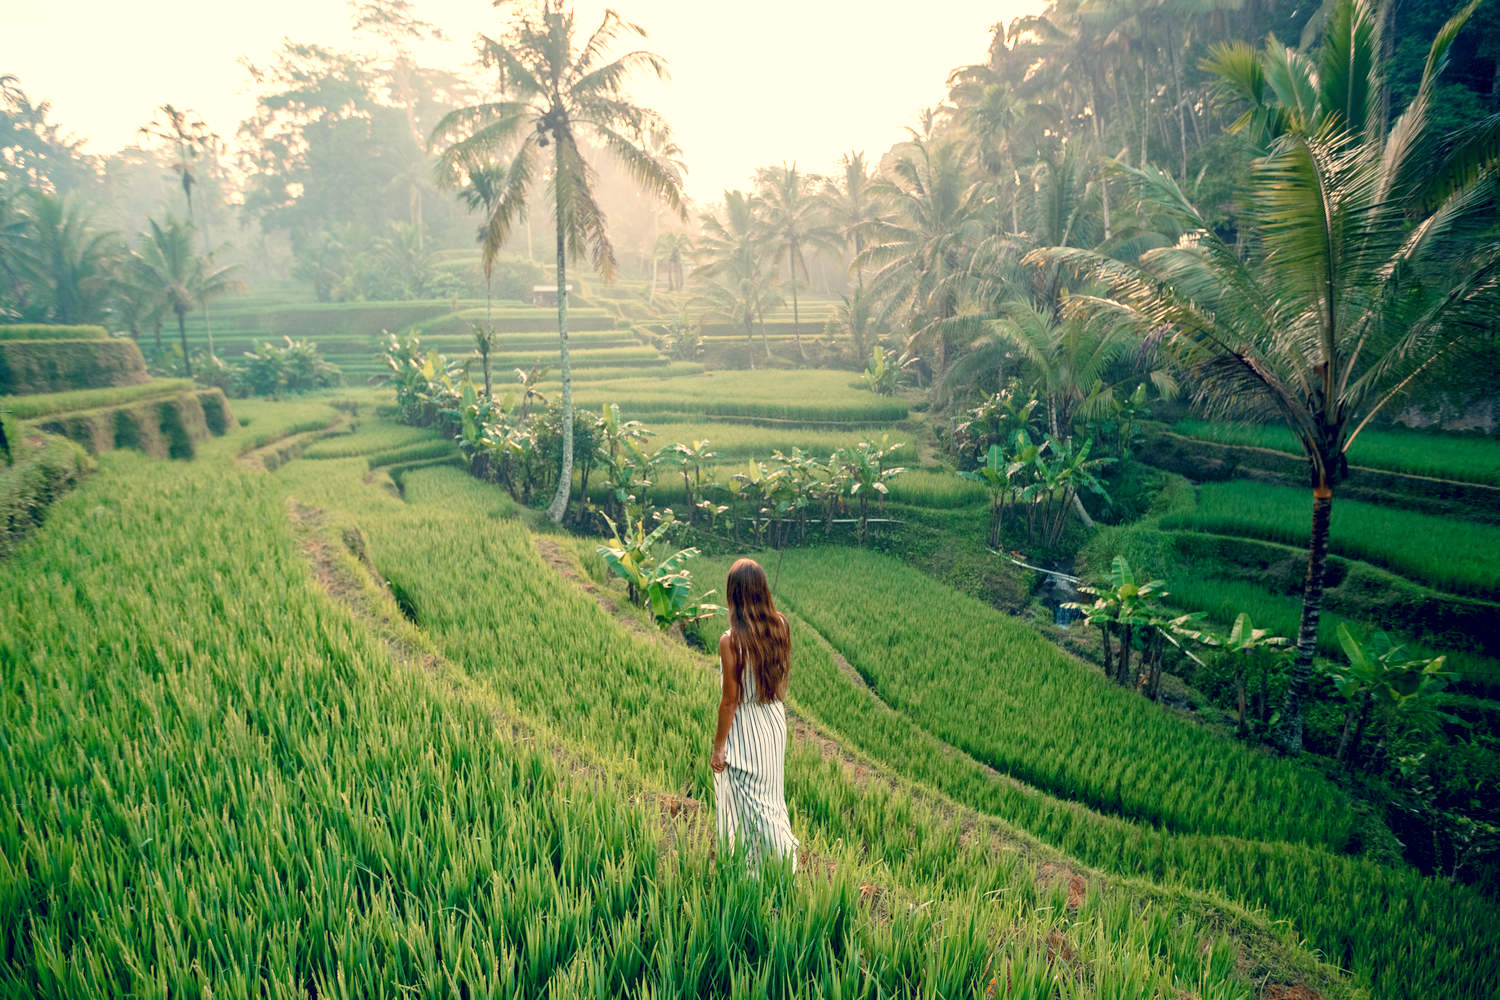 Young woman in a white dress walking through the lush green rice fields of Ubud in Bali